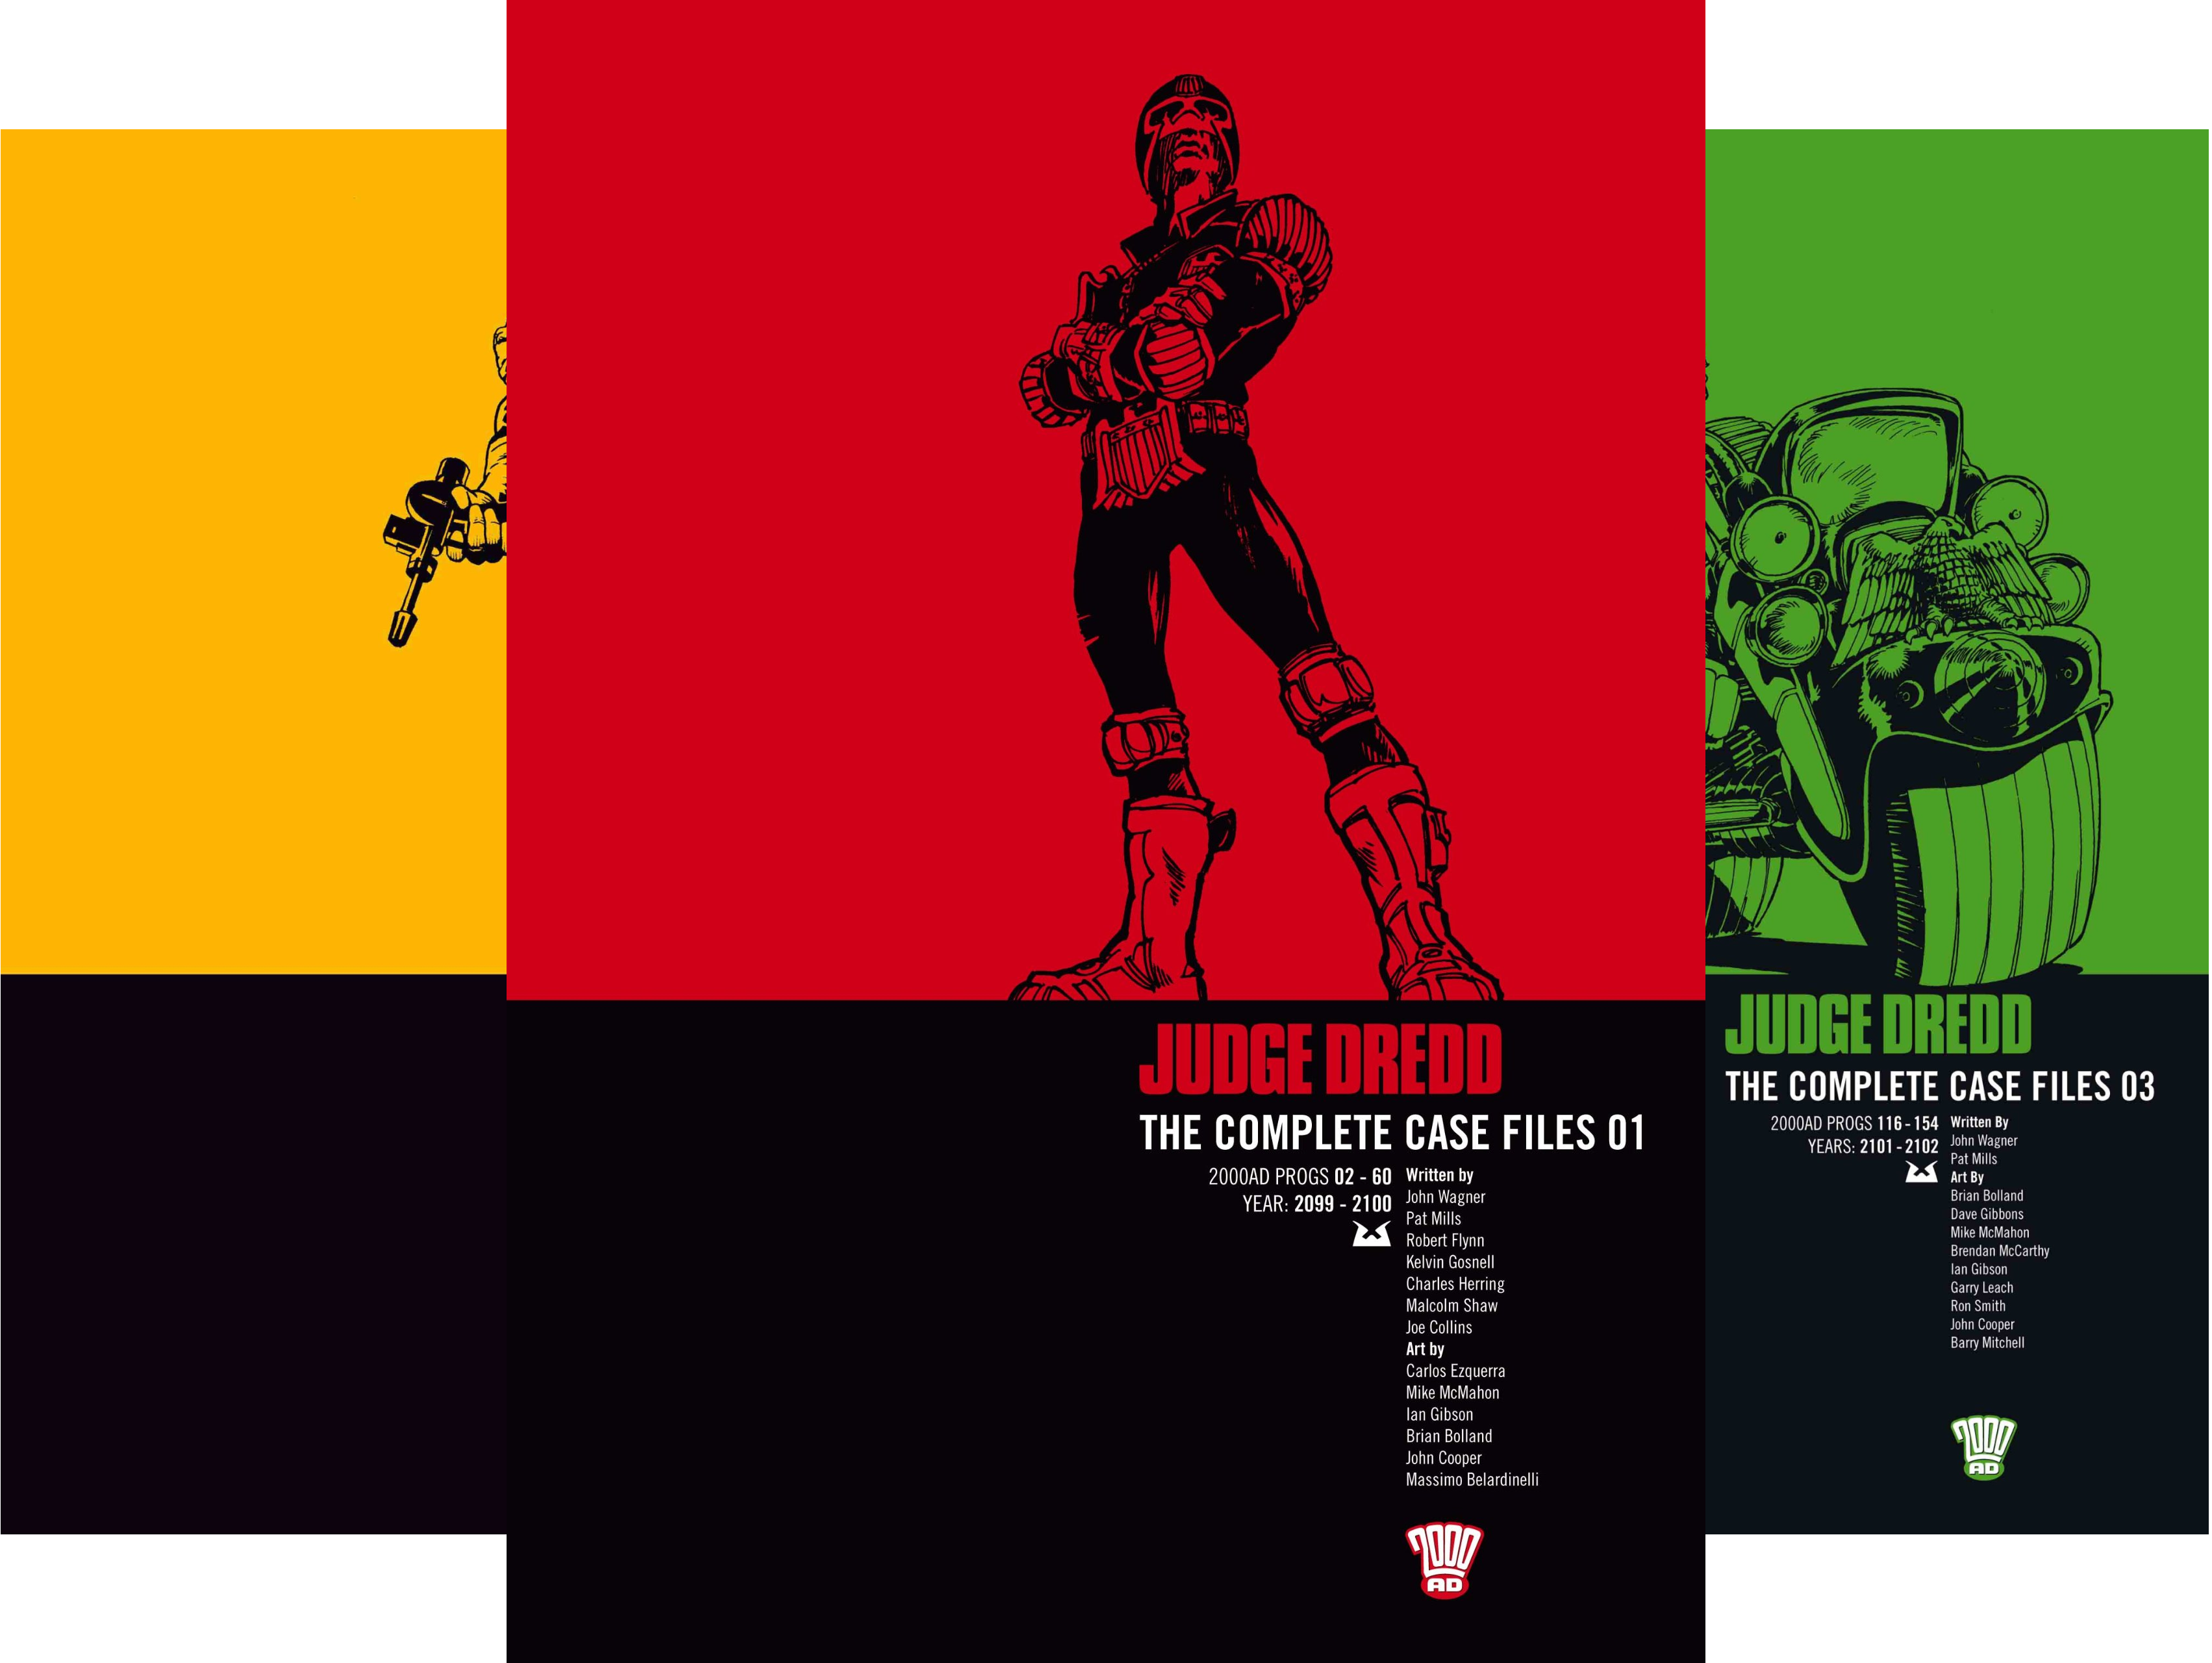 Judge Dredd The Complete Case Files (24 Book Series)